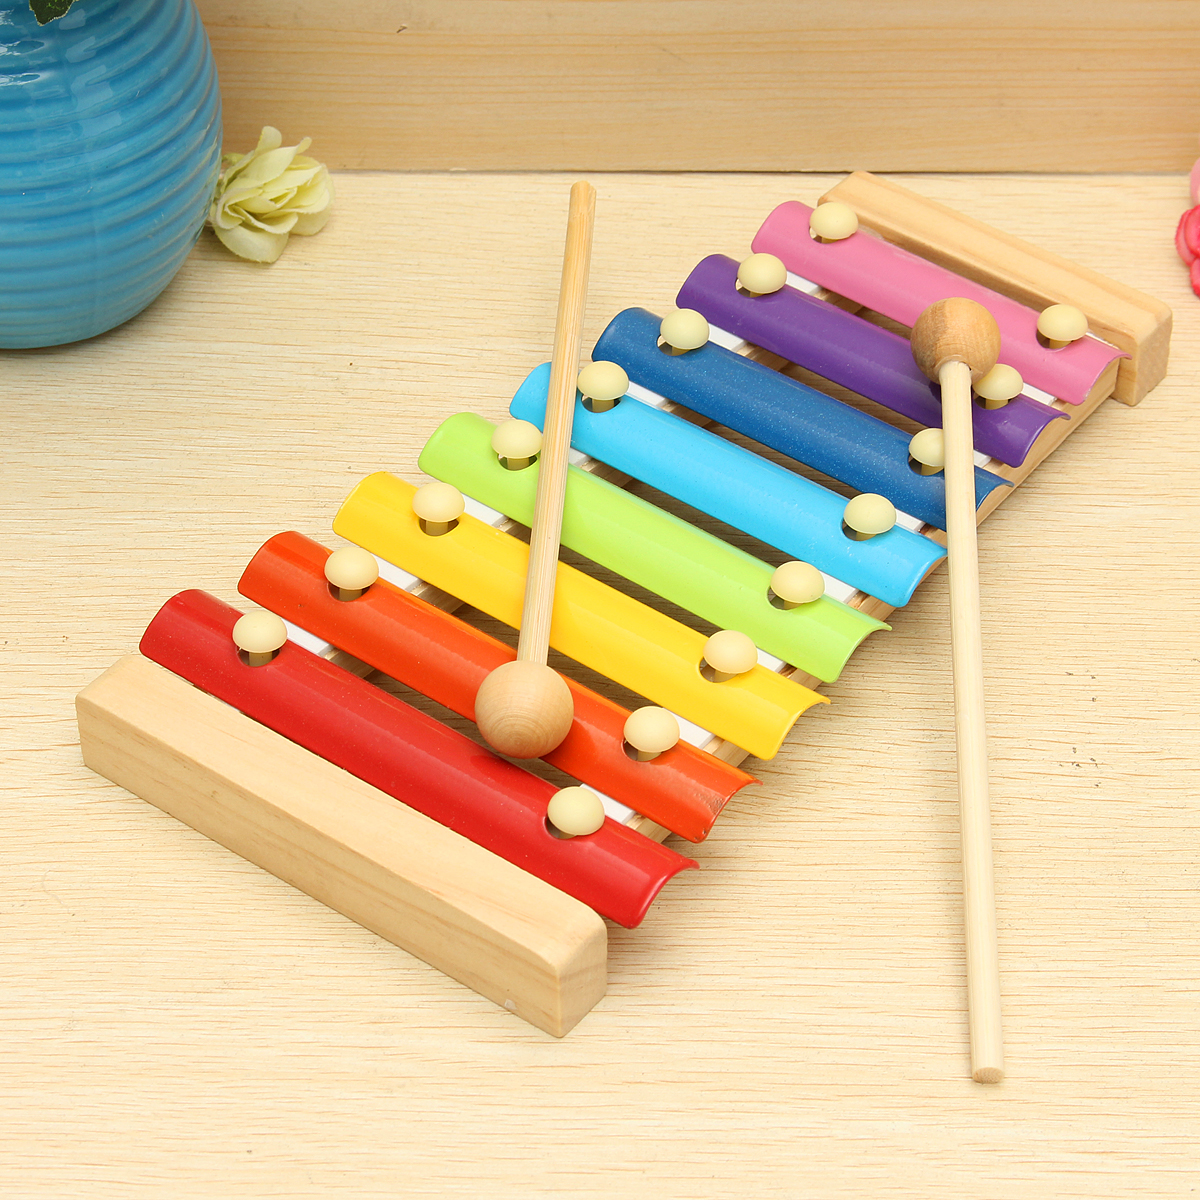 Kids Toys 8 Notes Musical Xylophone Piano Wooden